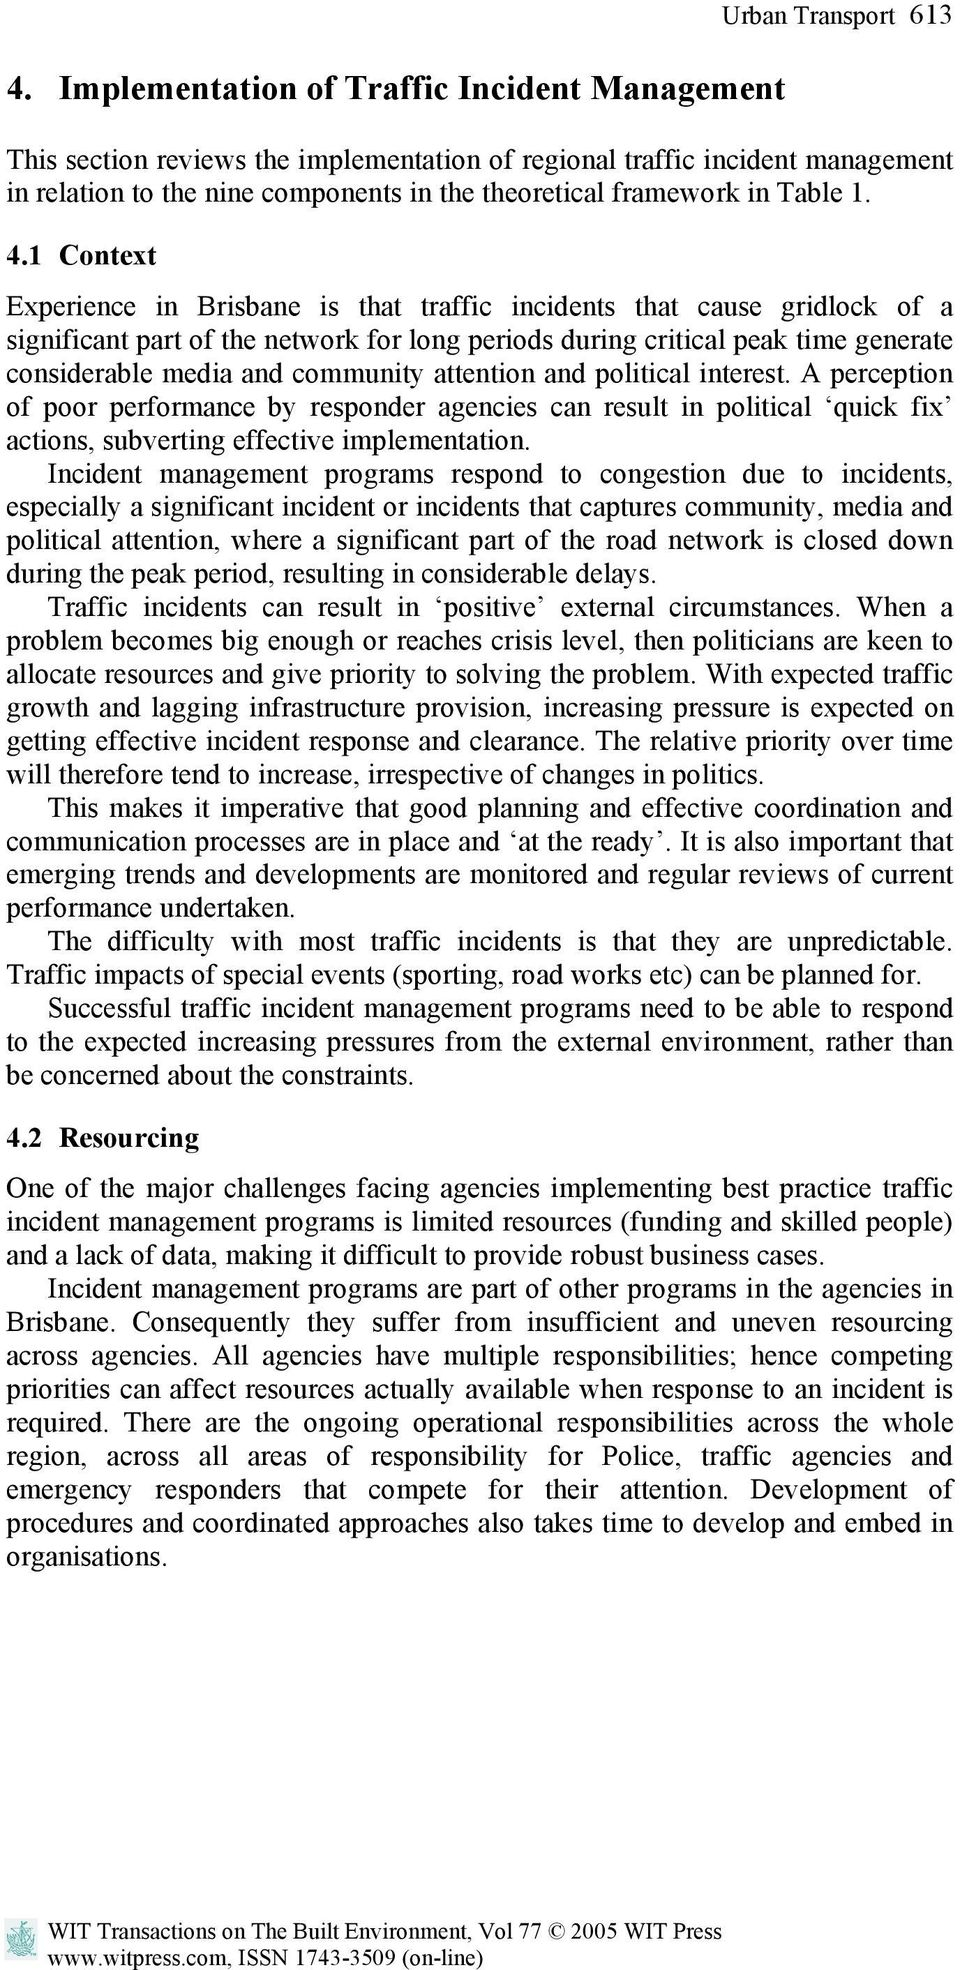 1 Context Experience in Brisbane is that traffic incidents that cause gridlock of a significant part of the network for long periods during critical peak time generate considerable media and